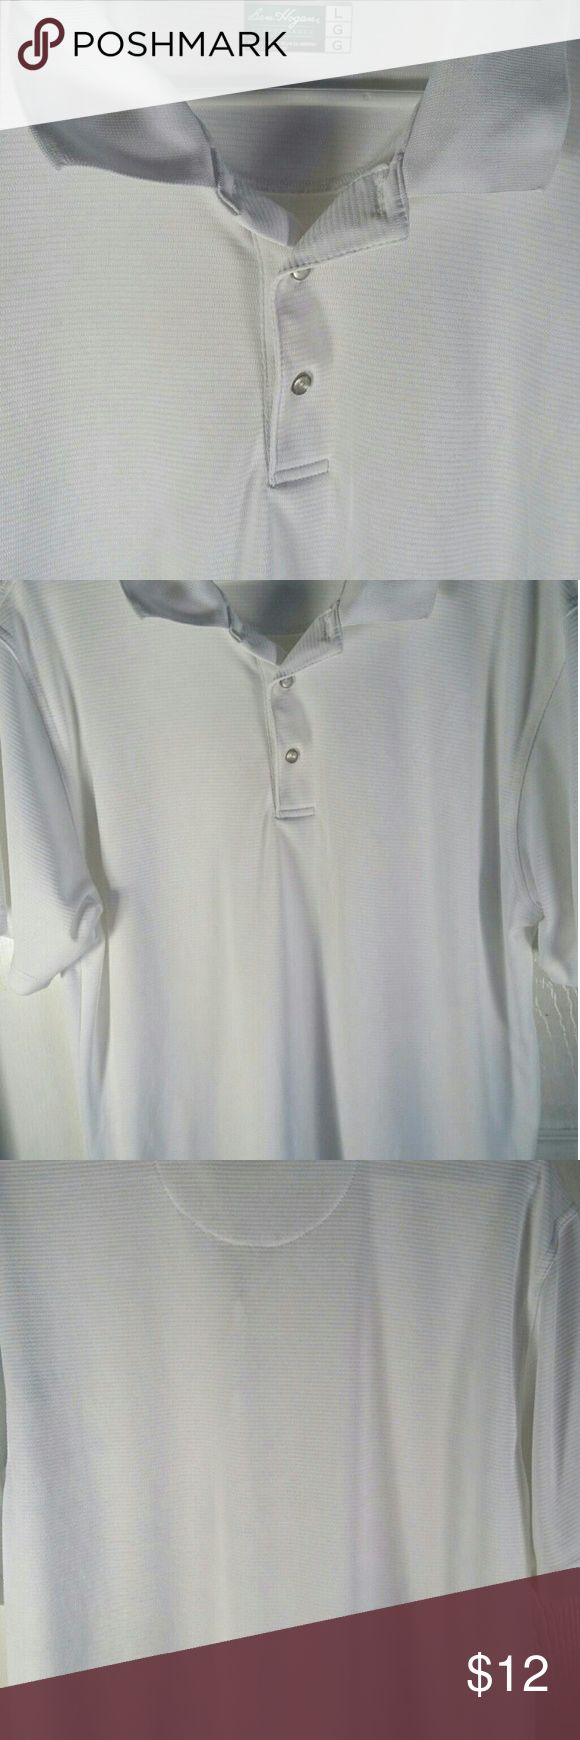 Men's White Golf Shirt This is a white polo golf shirt. It is in great condition with no rips, tears, or stains. It does have one small snag. Ben Hogan Performance  Shirts Polos